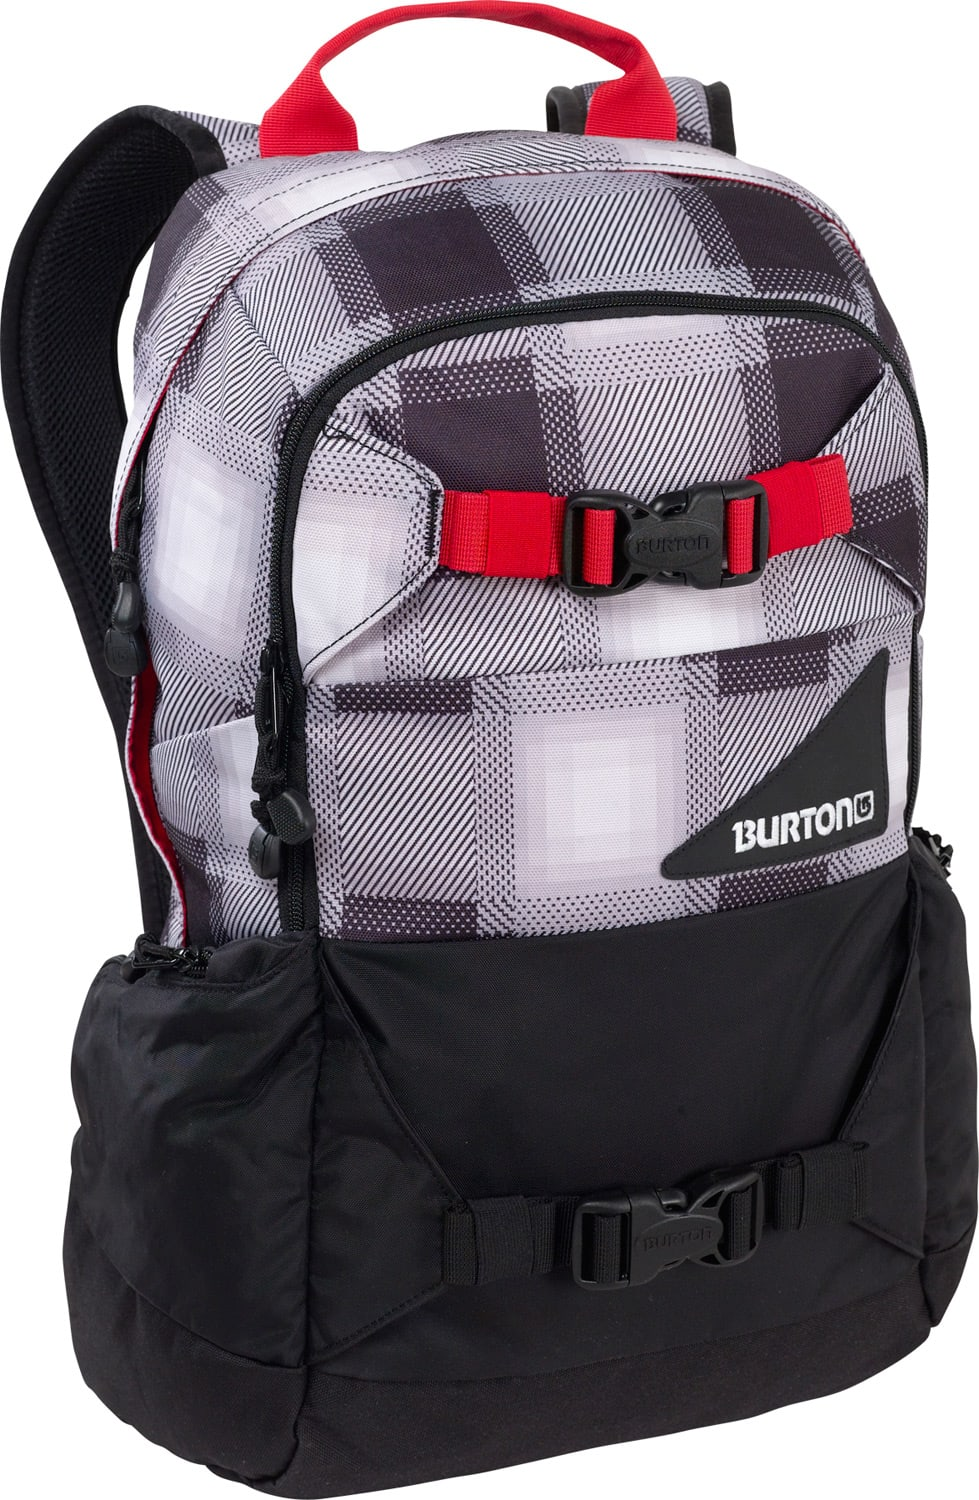 Shop for Burton Day Hiker 20L Backpack True Black Bobber Plaid - Men's